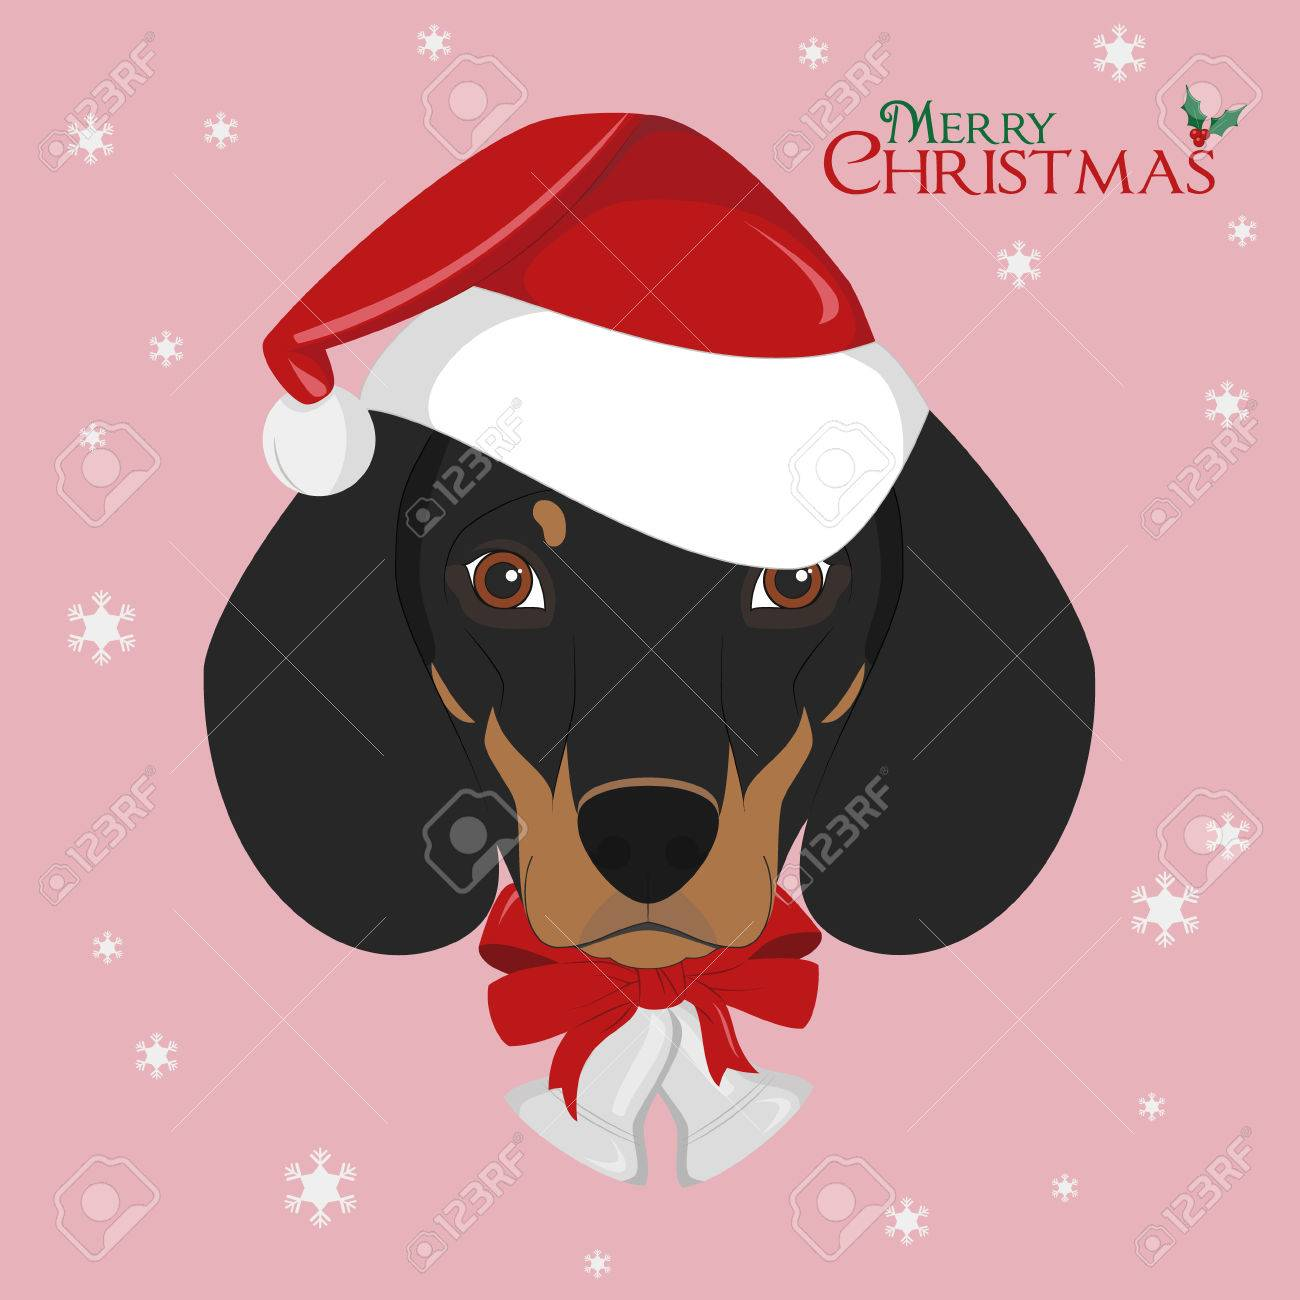 Christmas greeting card dachshund dog with red santas hat and christmas greeting card dachshund dog with red santas hat and christmas bells stock vector kristyandbryce Image collections